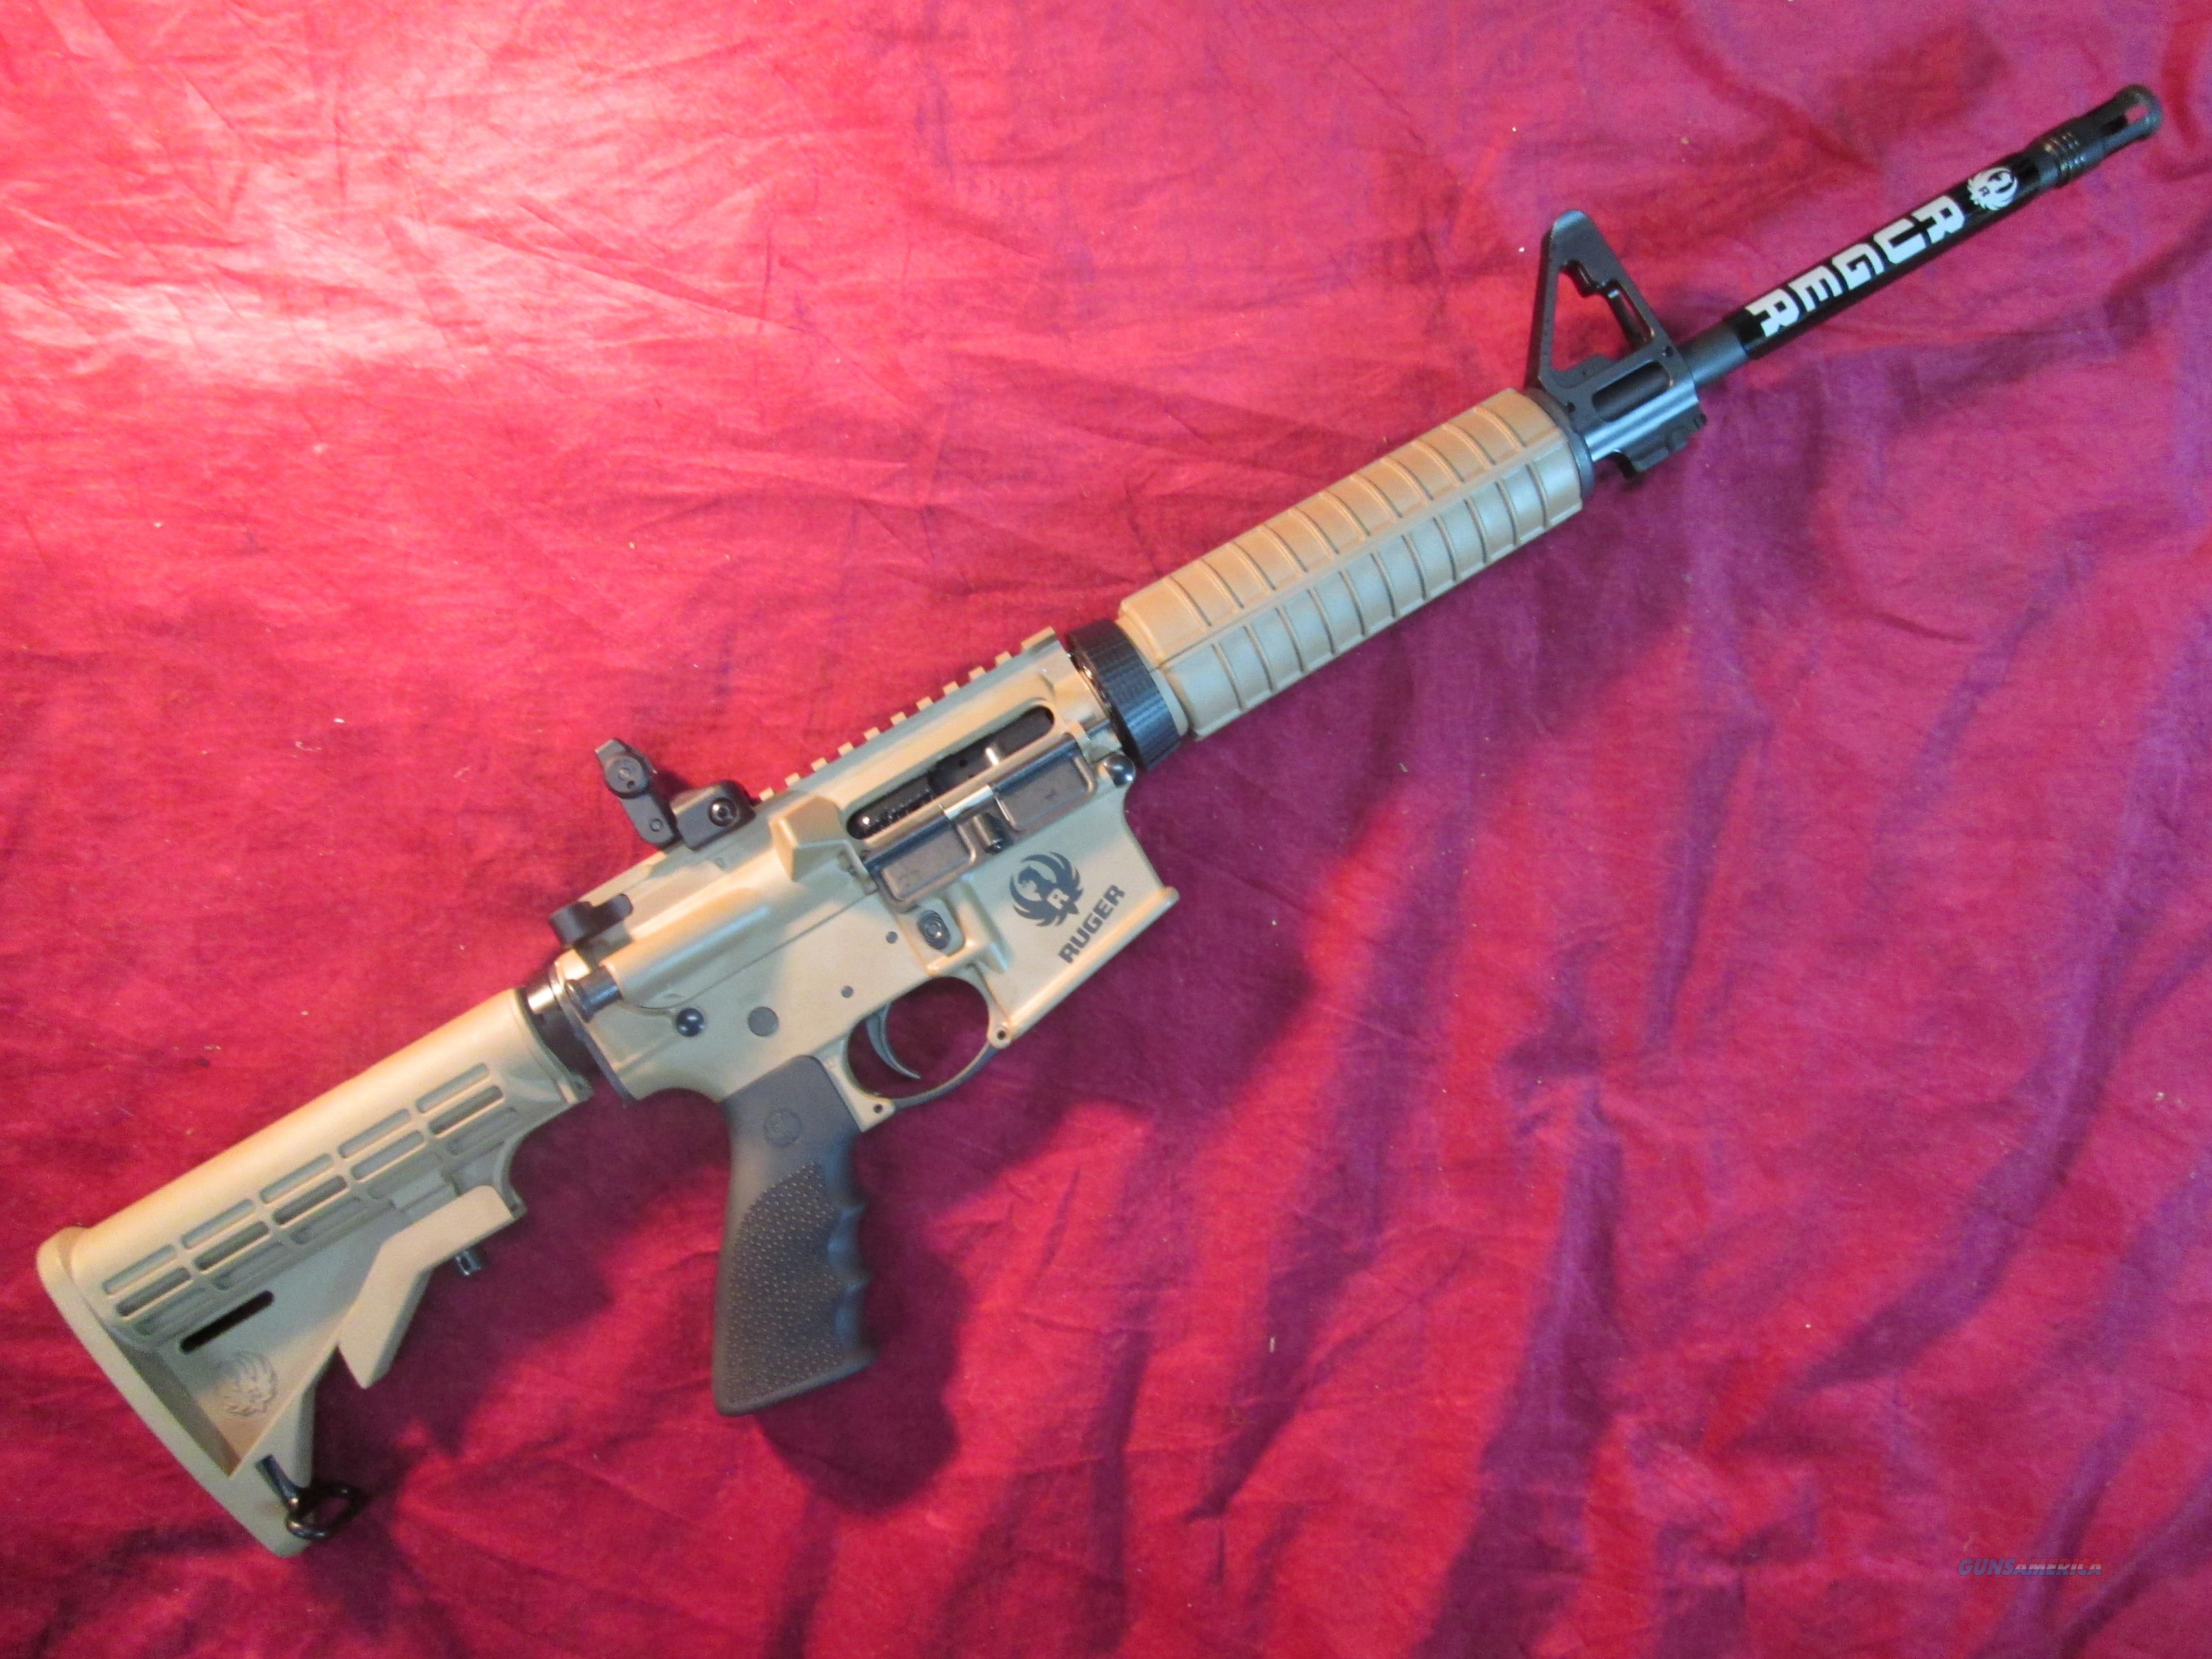 RUGER AR-556 5.56/223 cal AR15 BARRETT BROWN  CERAKOTE NEW   (08503)   Guns > Rifles > Ruger Rifles > SR Series